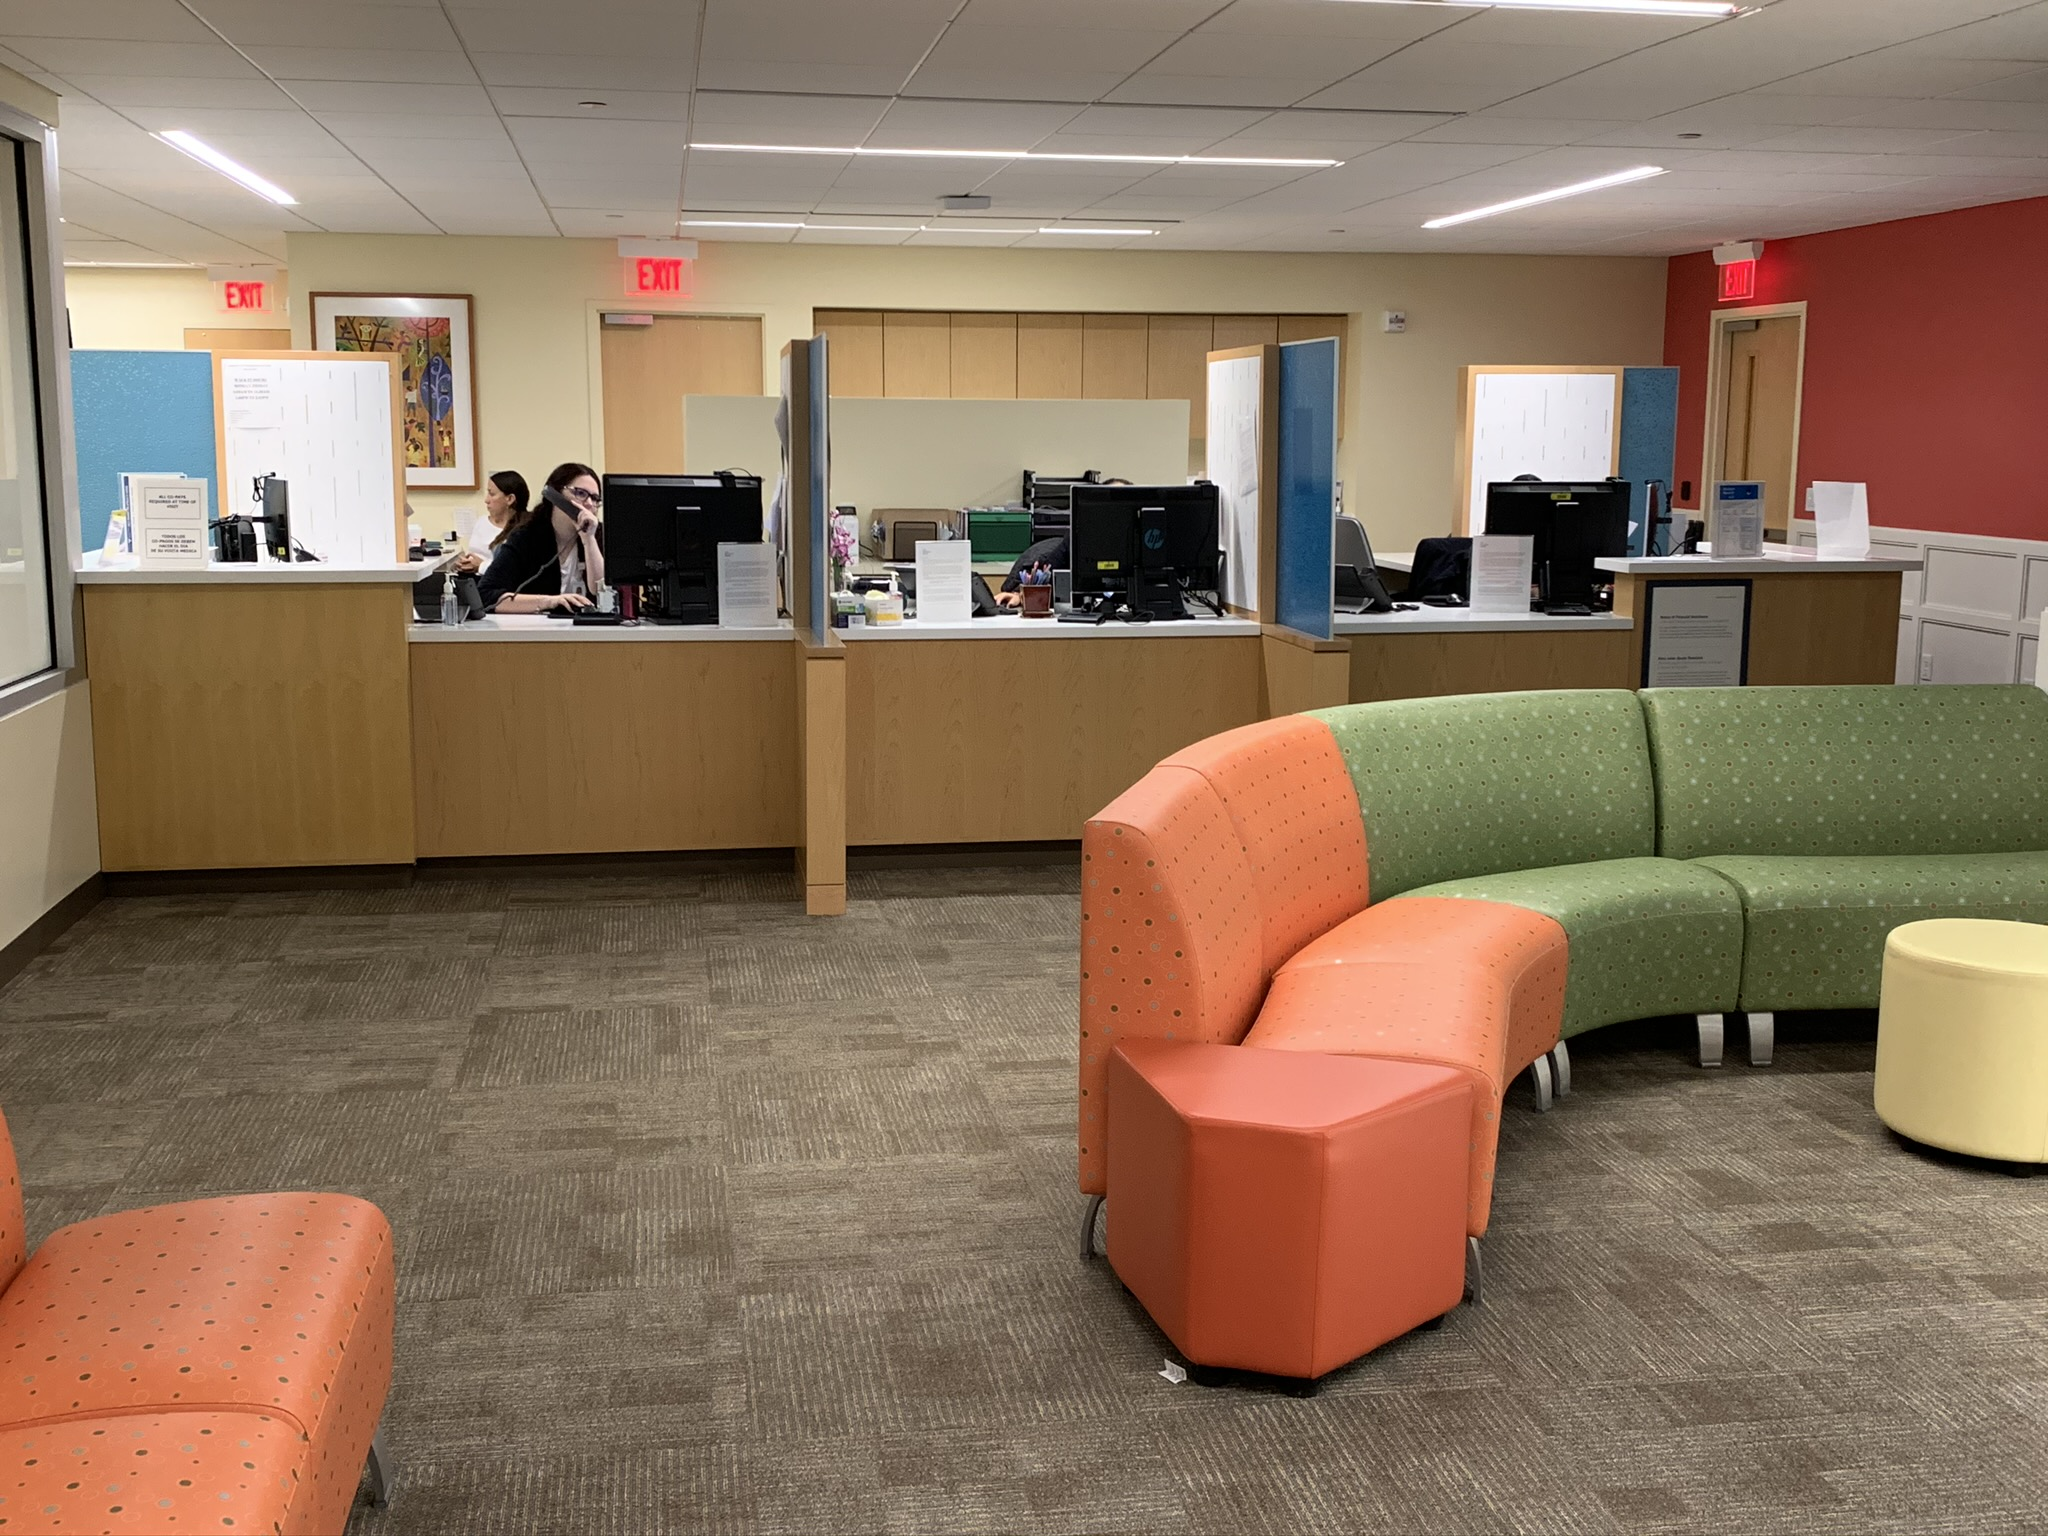 yale-new-haven-med-center-img-IMG_1137